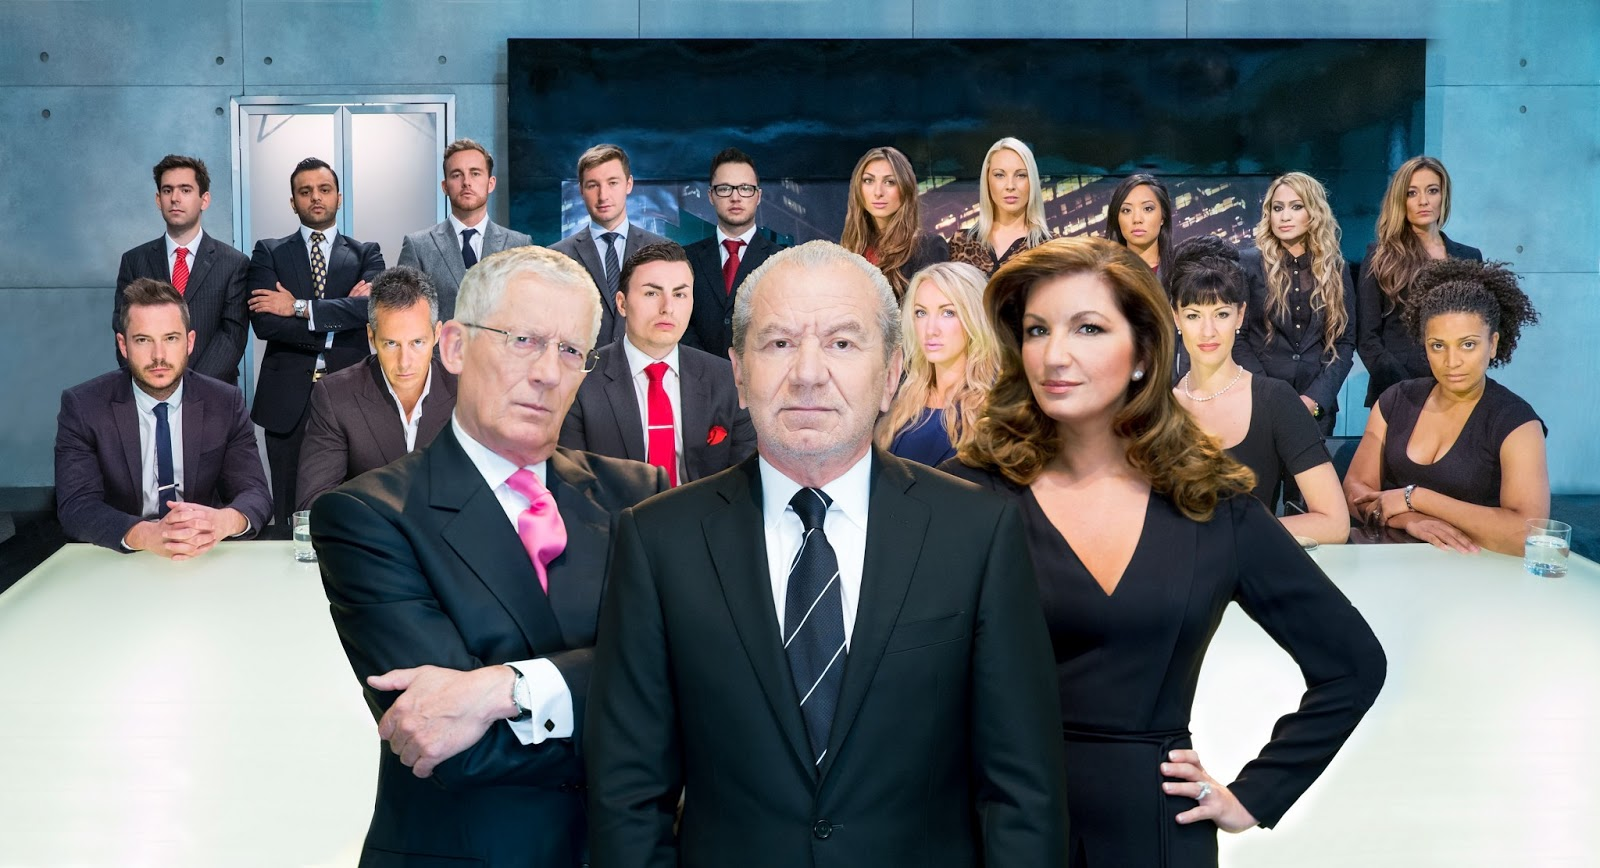 meet the candidates apprentice 2013 movies